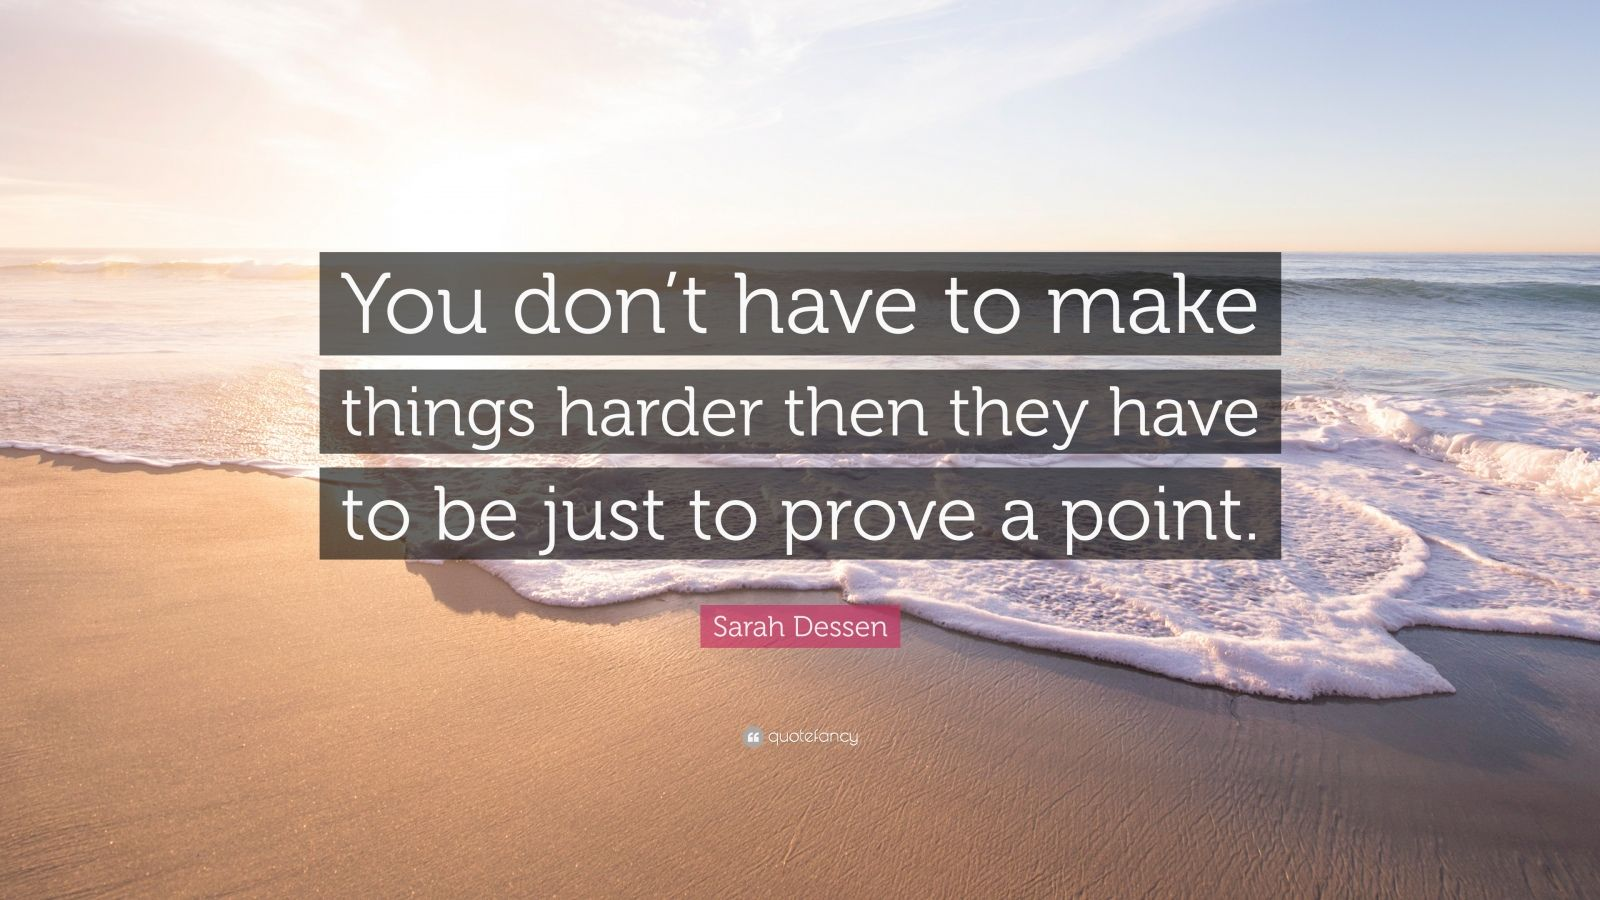 """Sarah Dessen Quote: """"You don't have to make things harder then they have to be just to prove a point."""""""